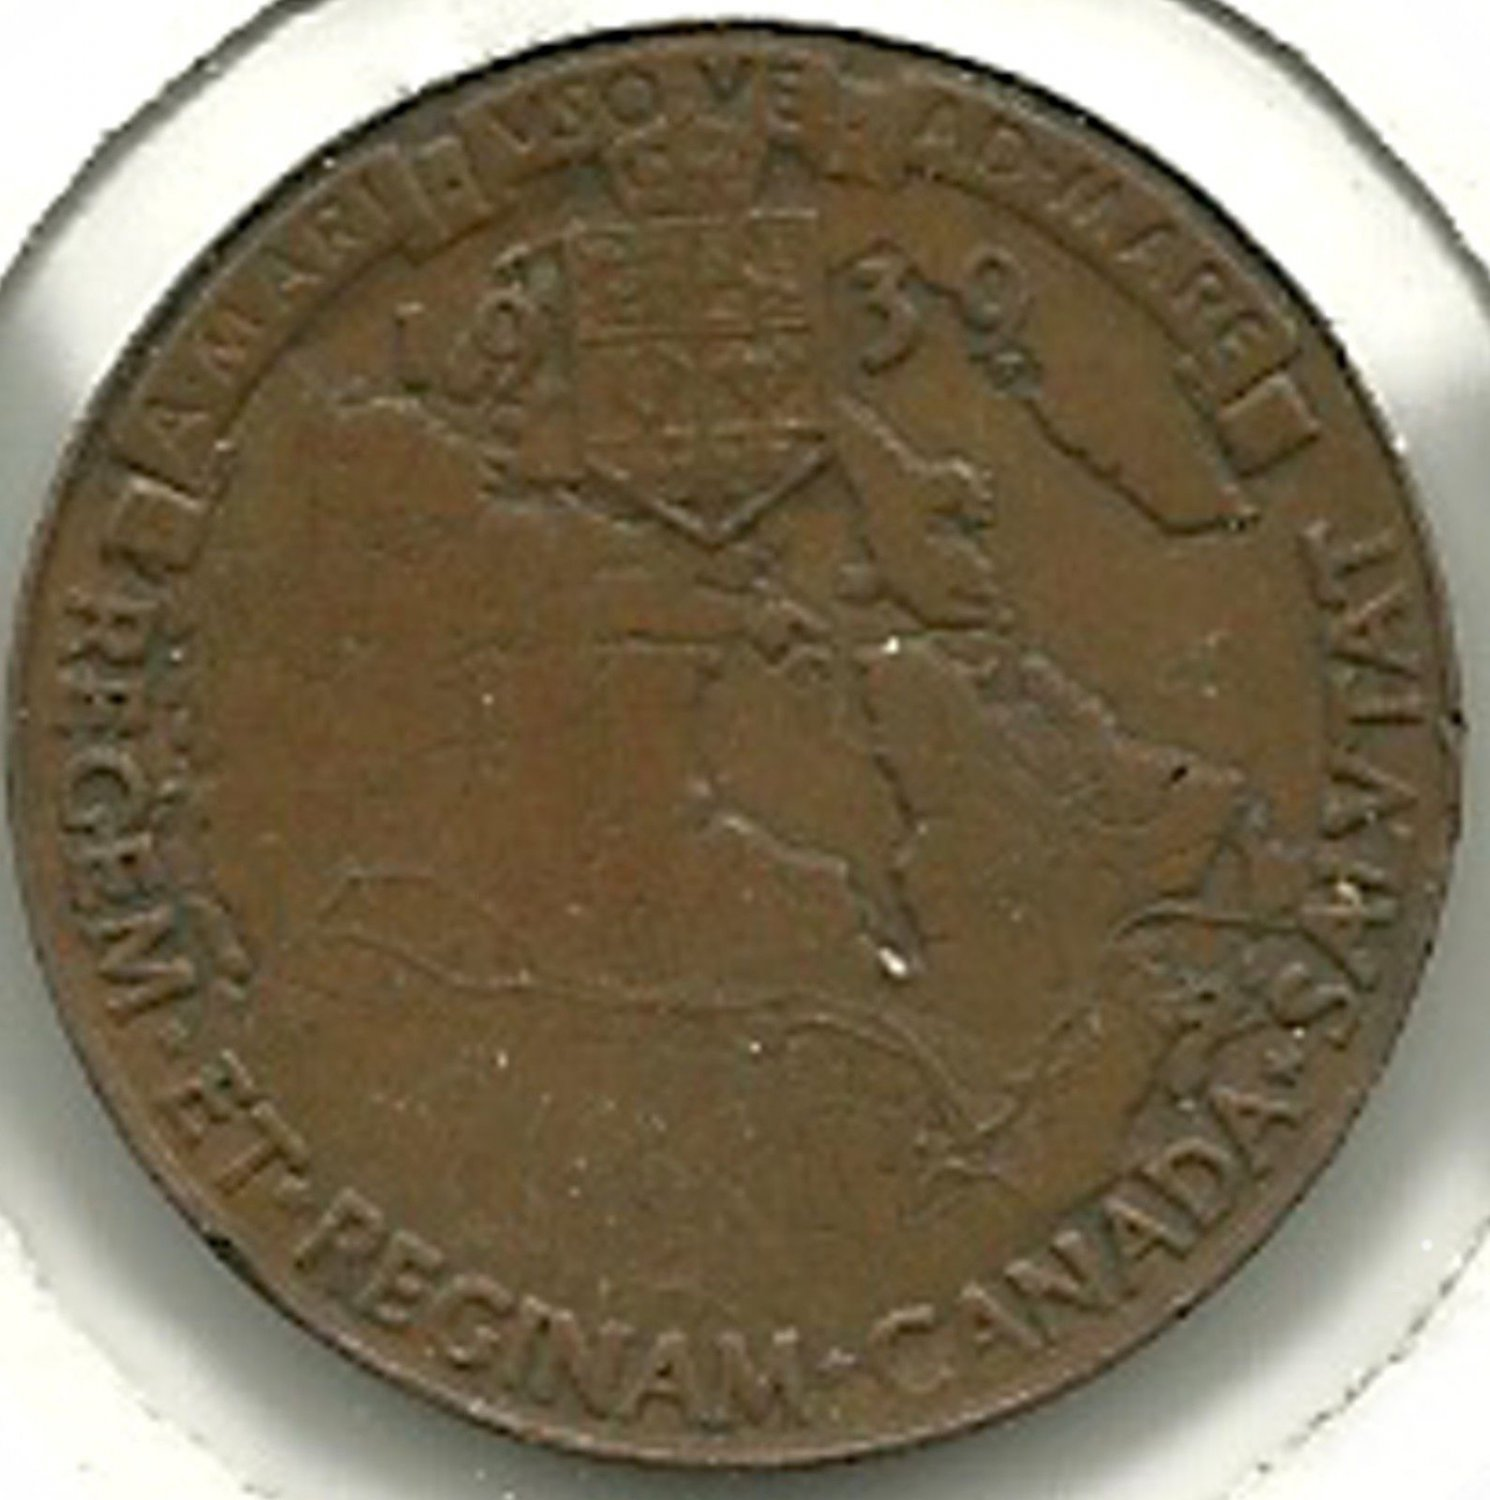 Royal Visit Medallion - George VI 1939 CANADA TOKEN #3.